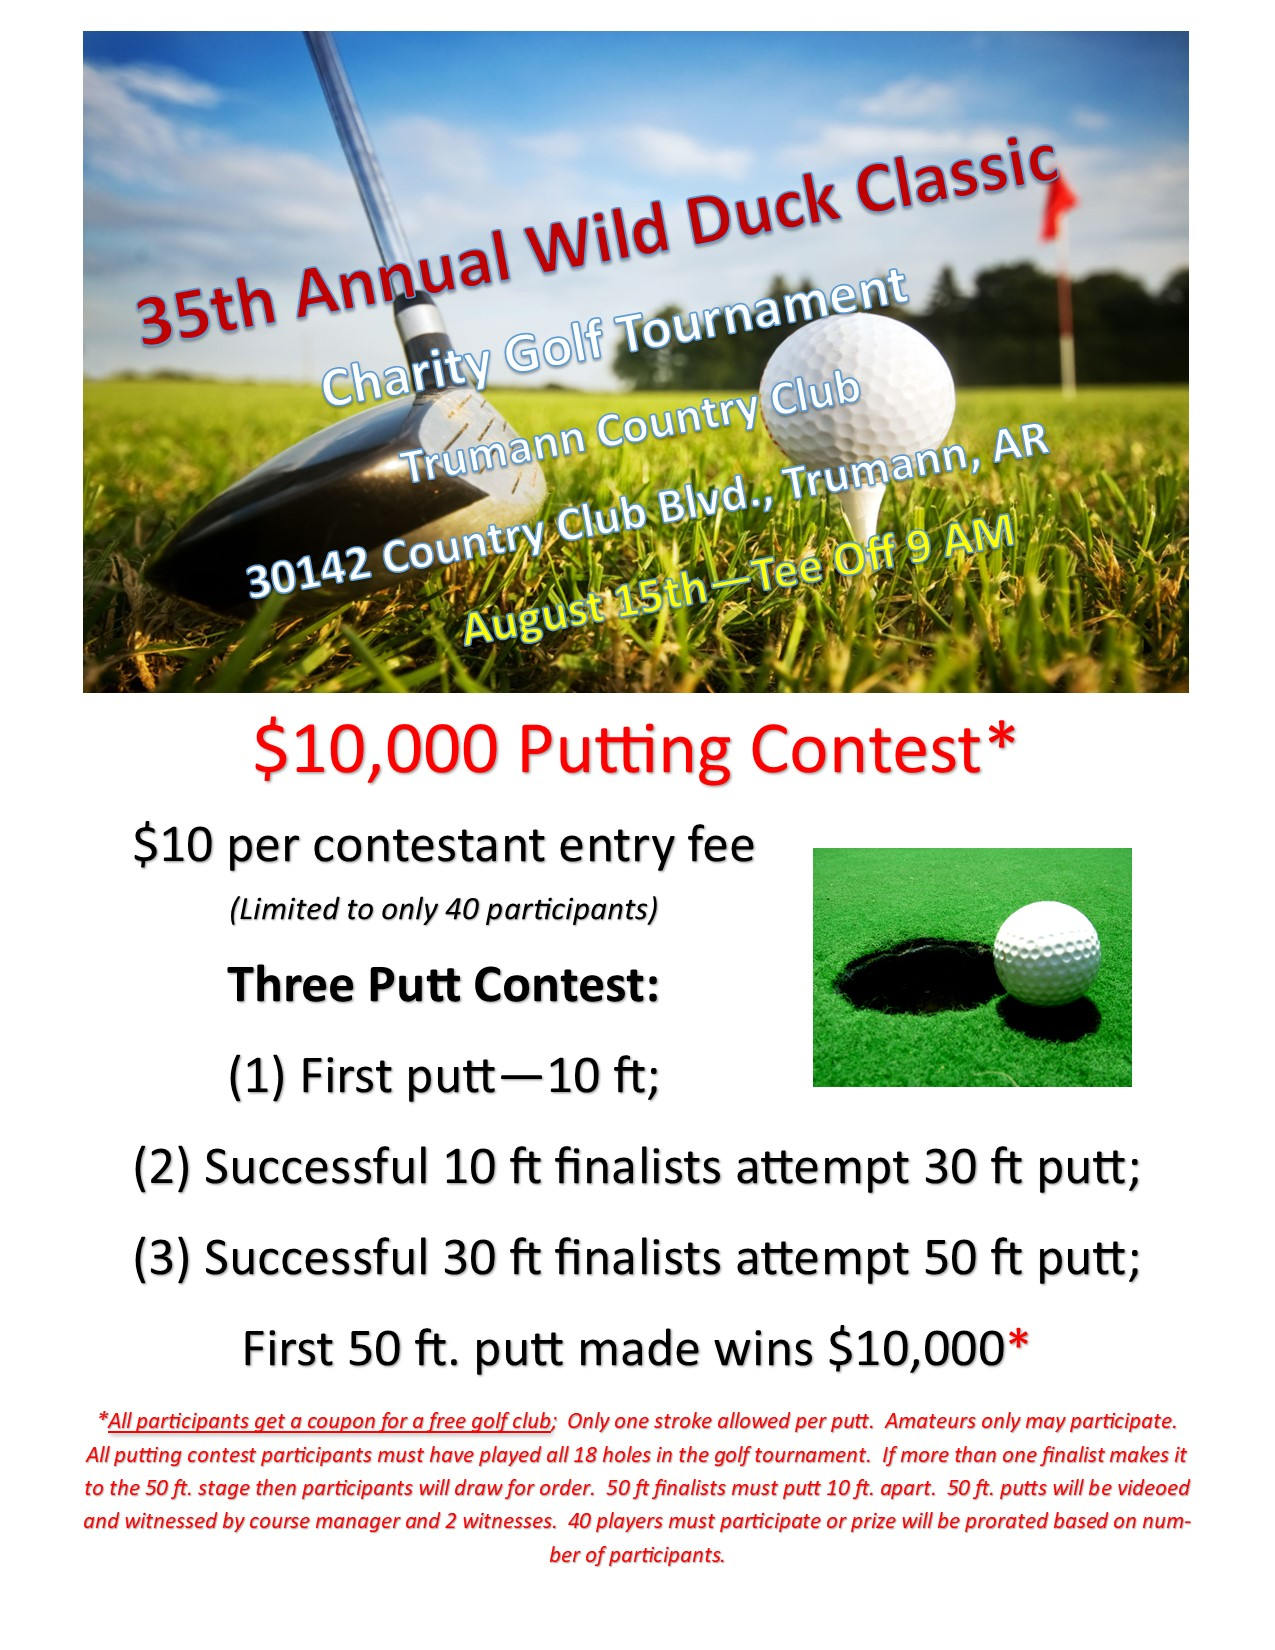 2020 Wild Duck Classic Putting Contest flier